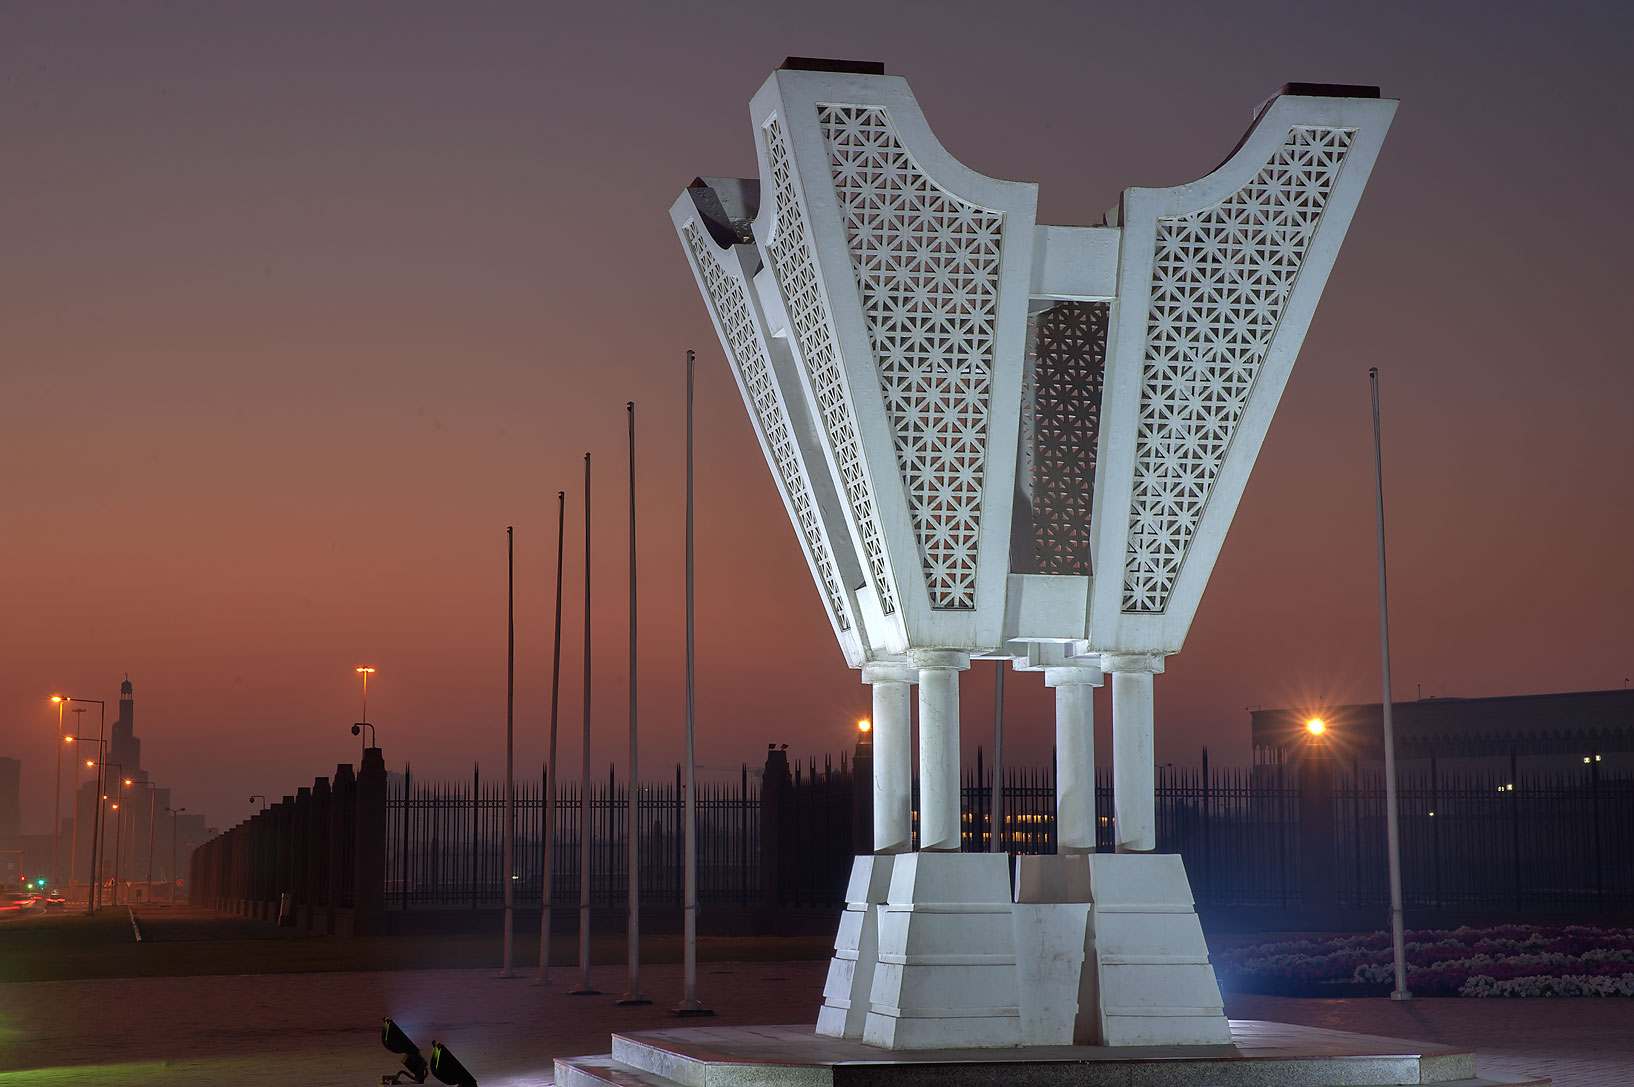 Sculpture of incense burner on Corniche at morning dusk. Doha, Qatar